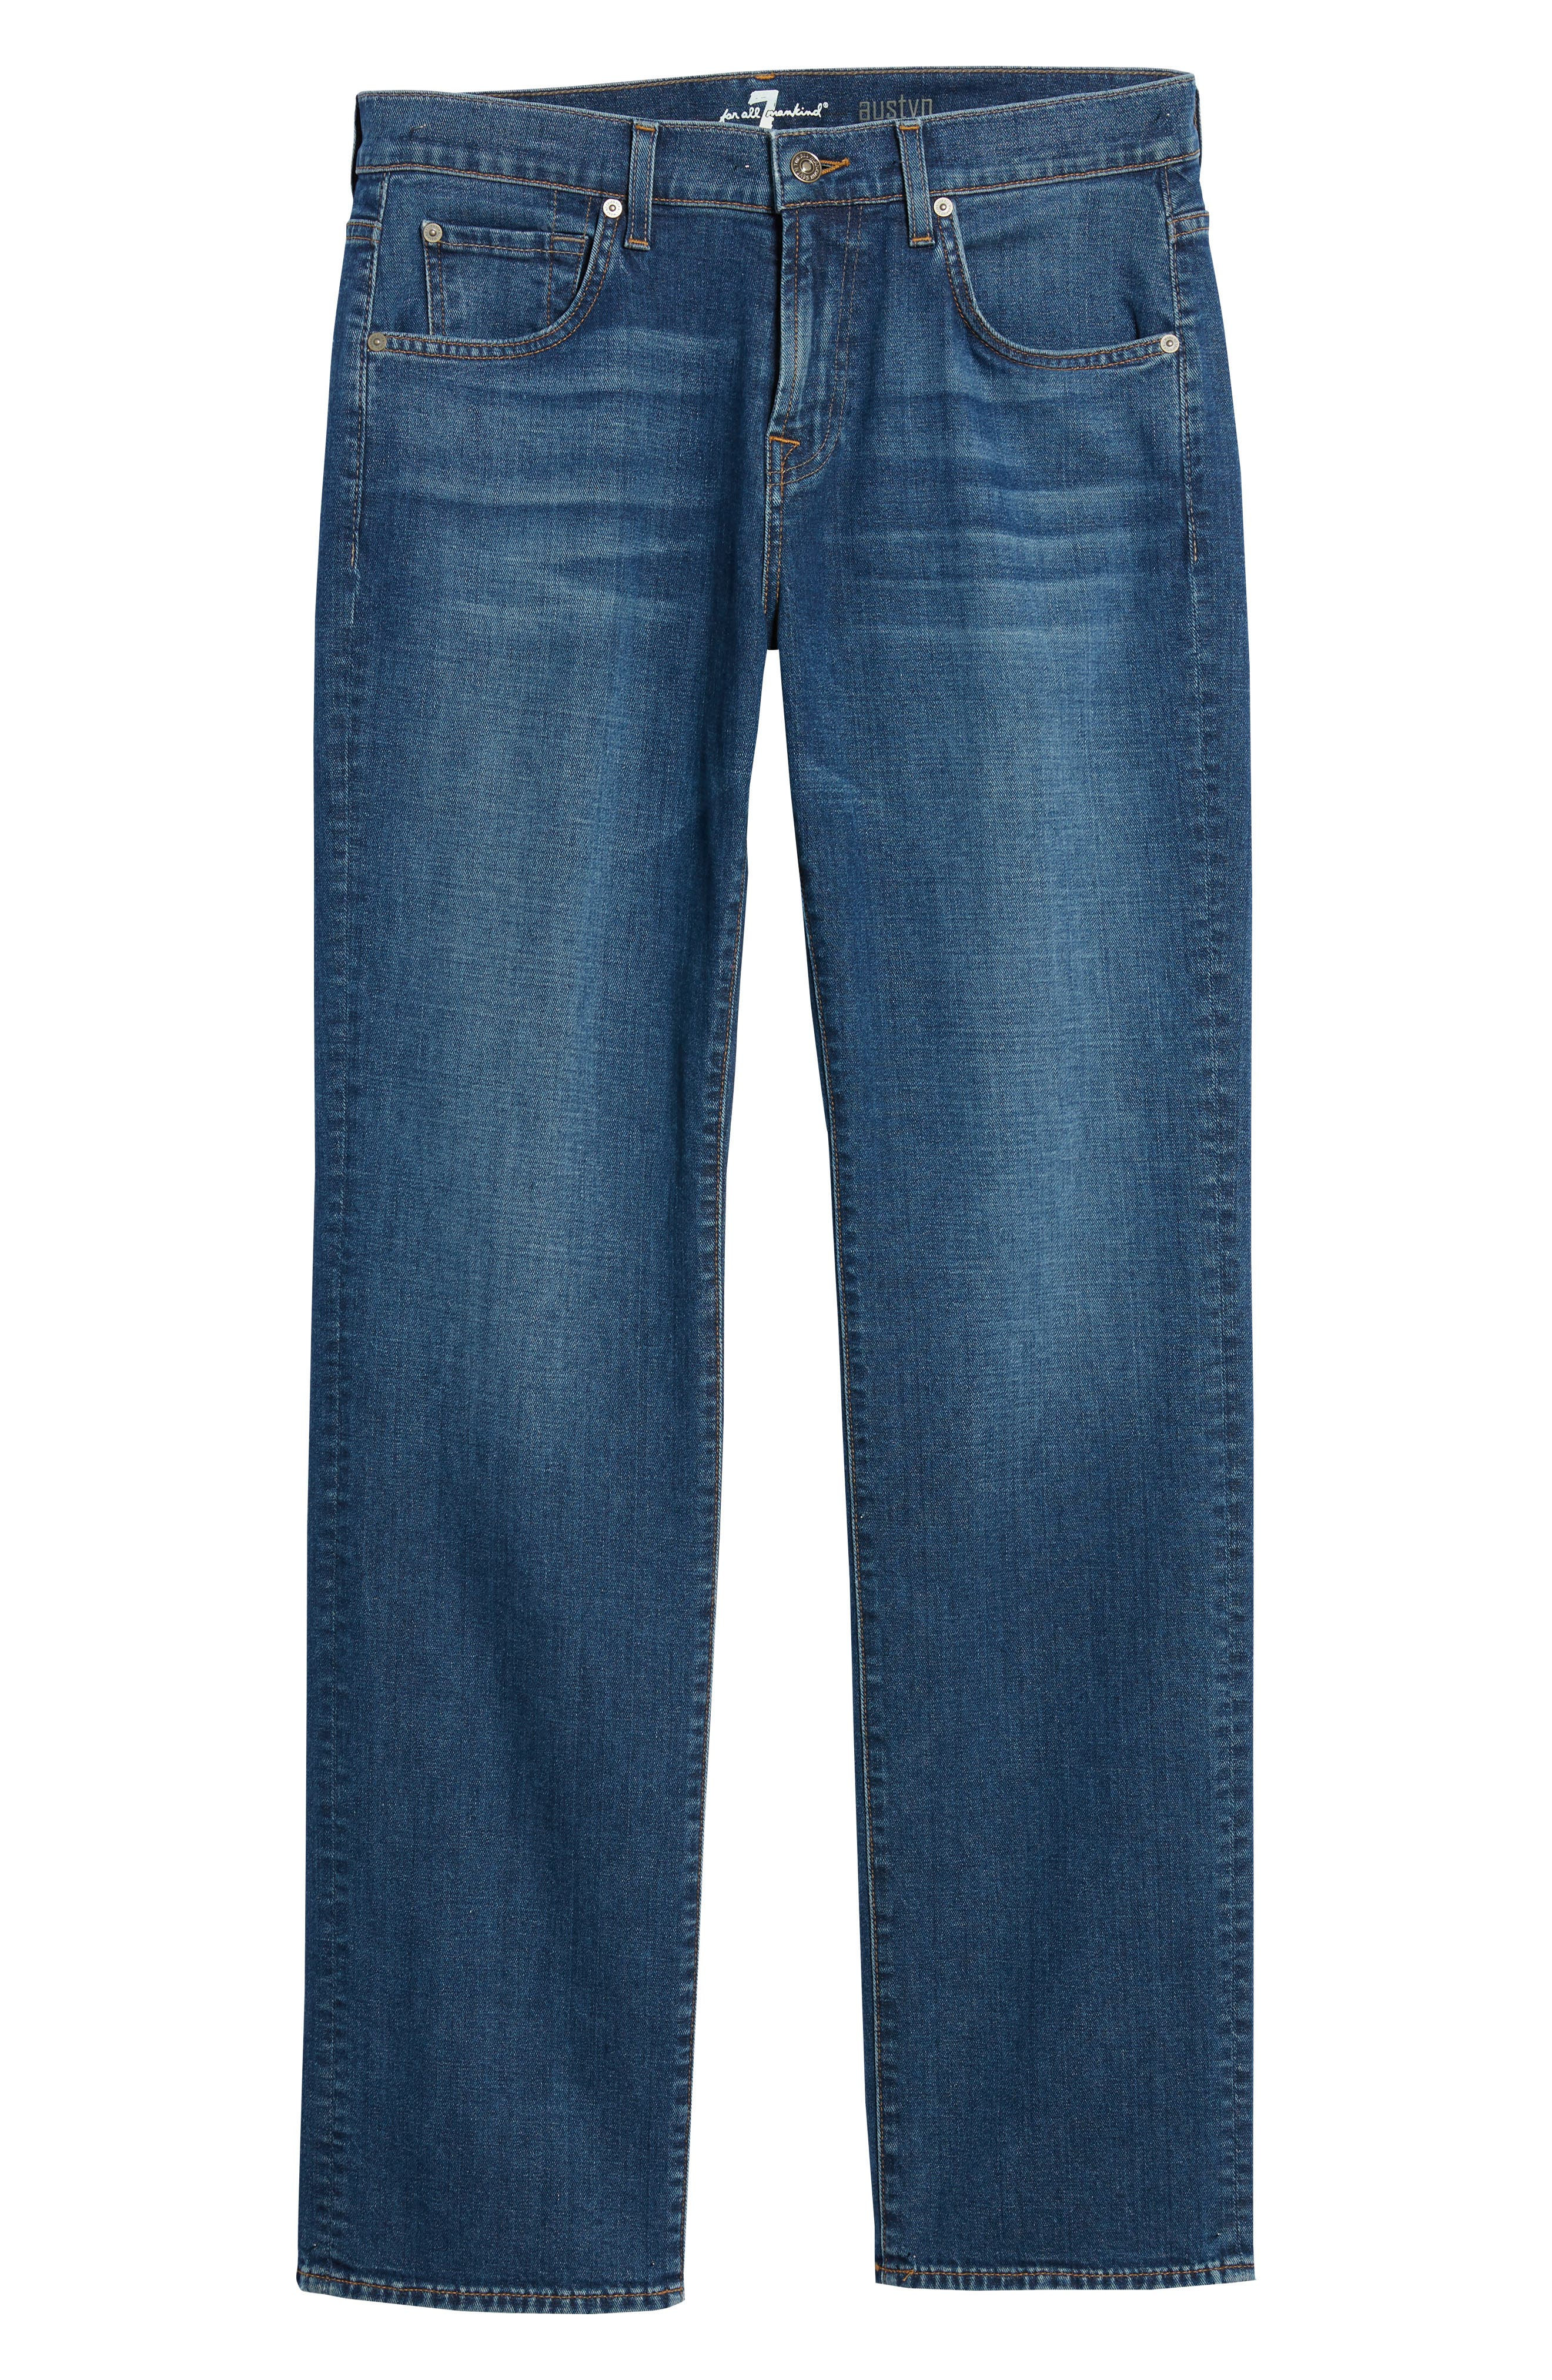 Austyn Relaxed Fit Jeans,                             Alternate thumbnail 6, color,                             Oasis